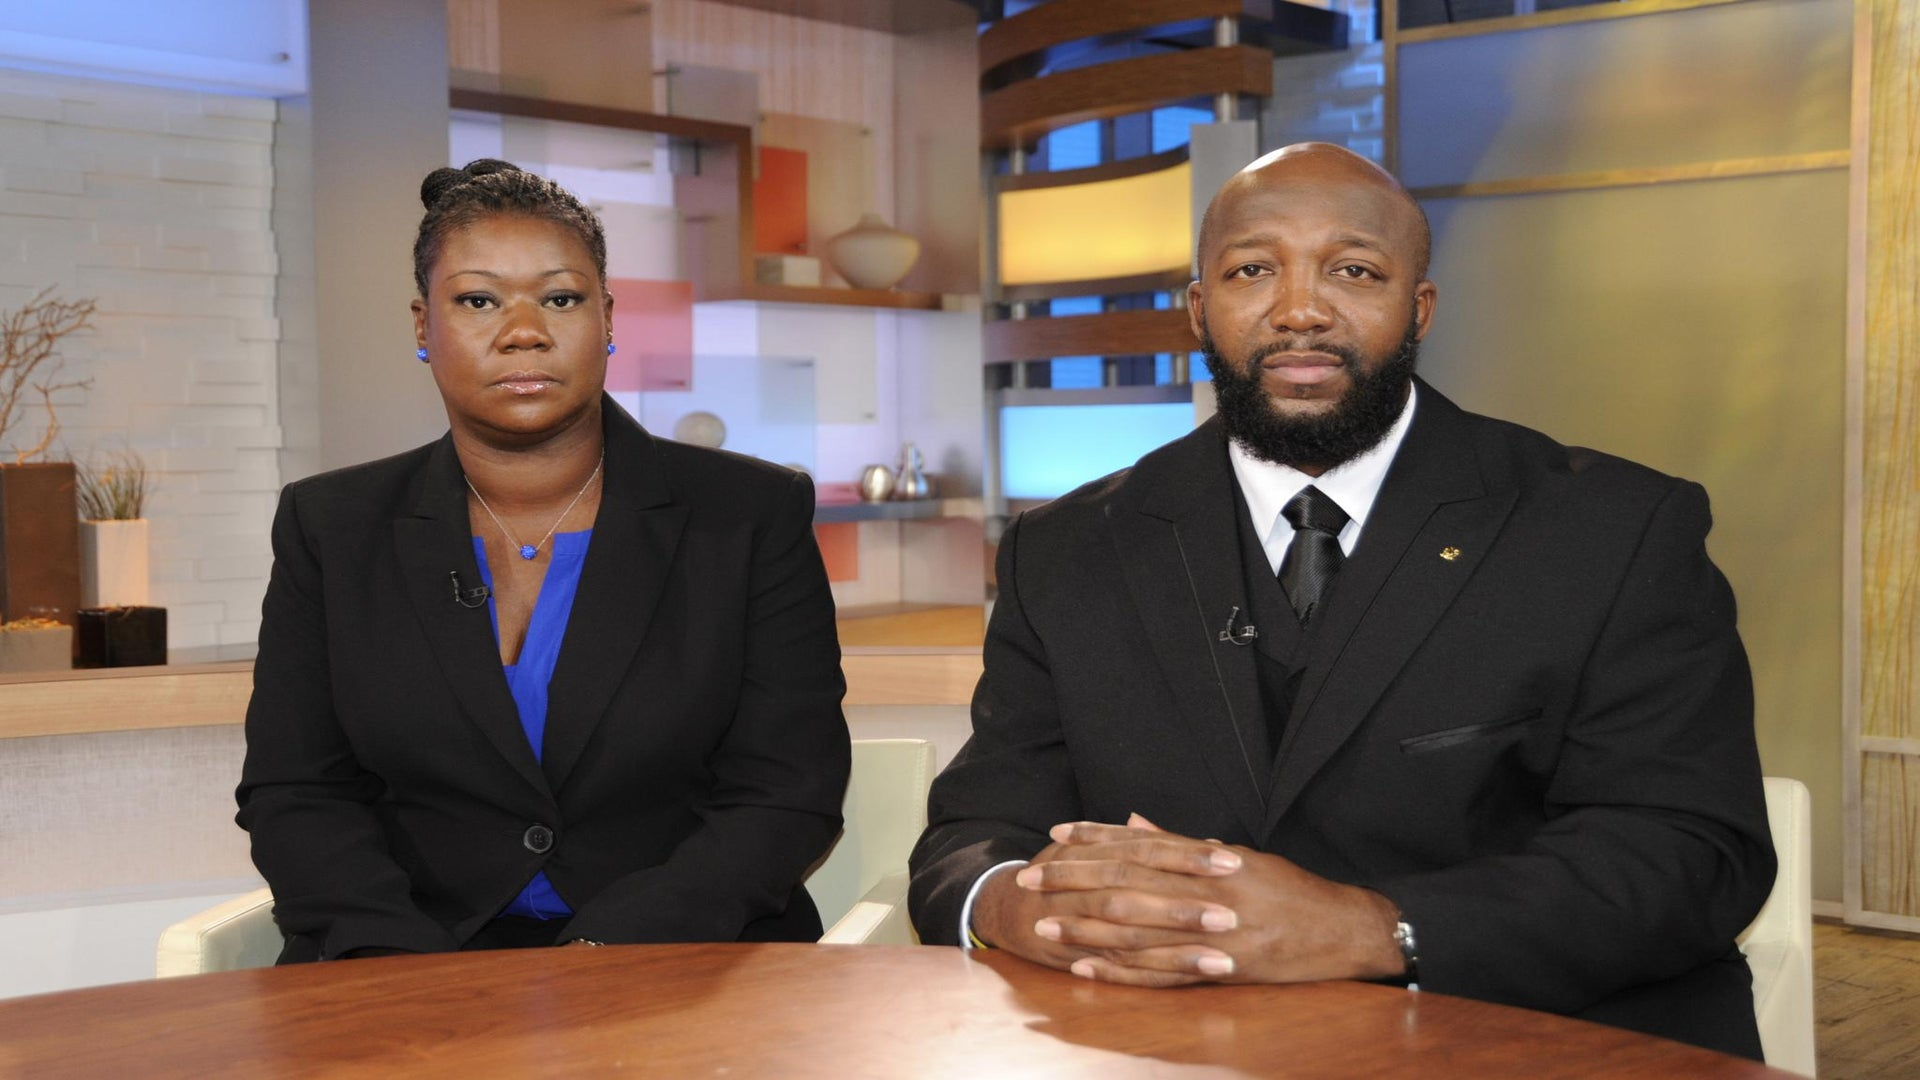 Trayvon Martin's Parents Call for National 'Stand Your Ground' Law Review